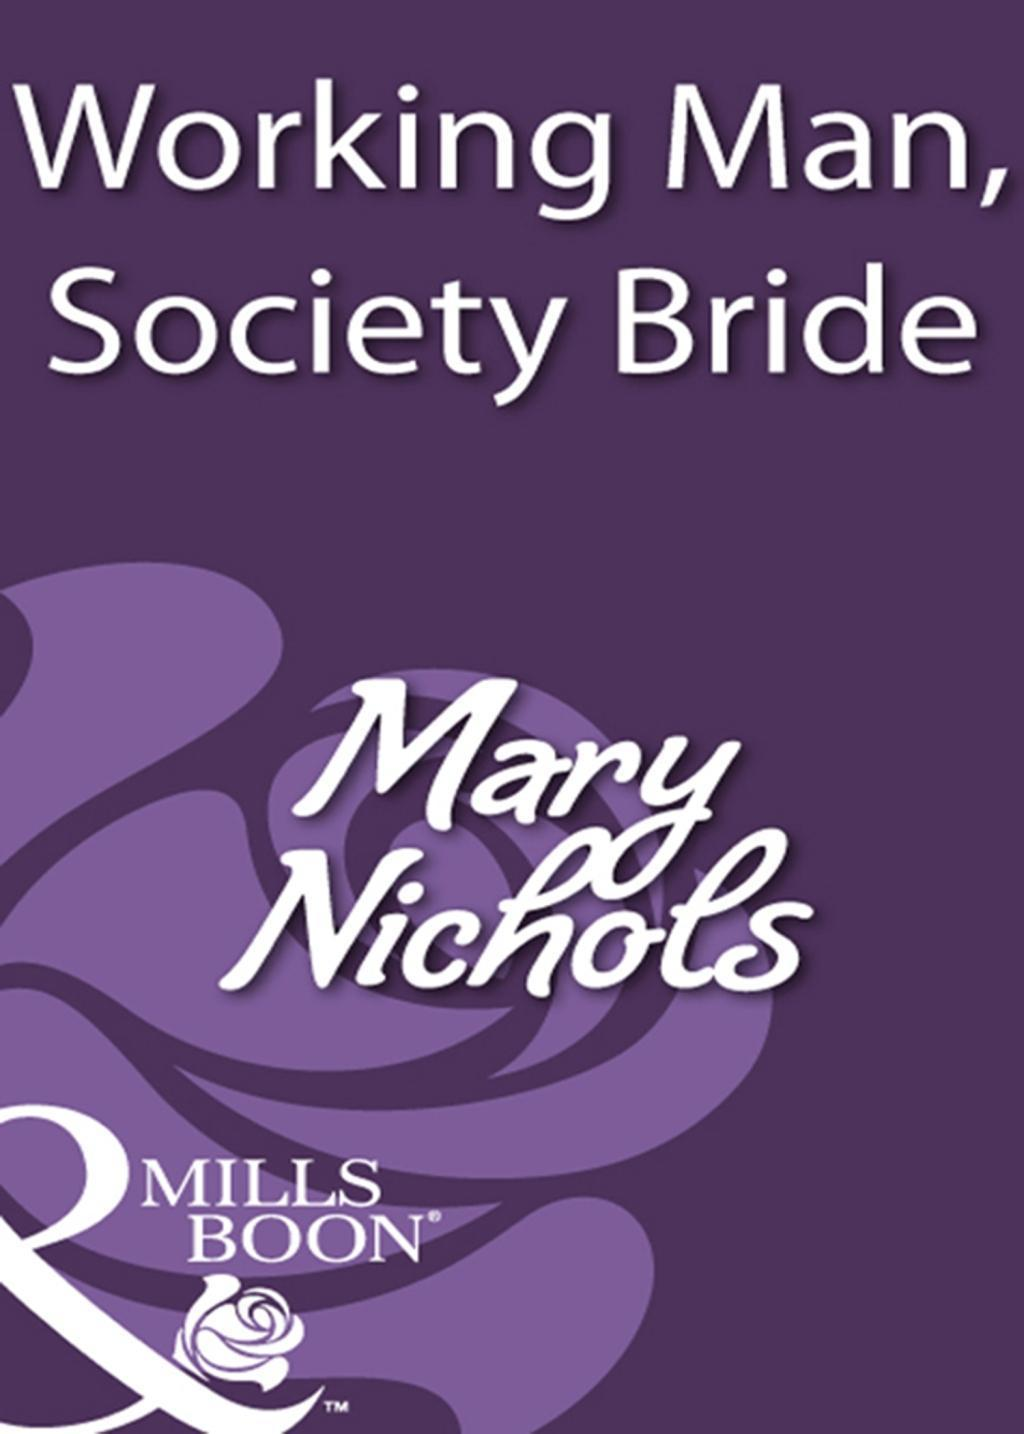 Working Man, Society Bride (Mills & Boon Historical)